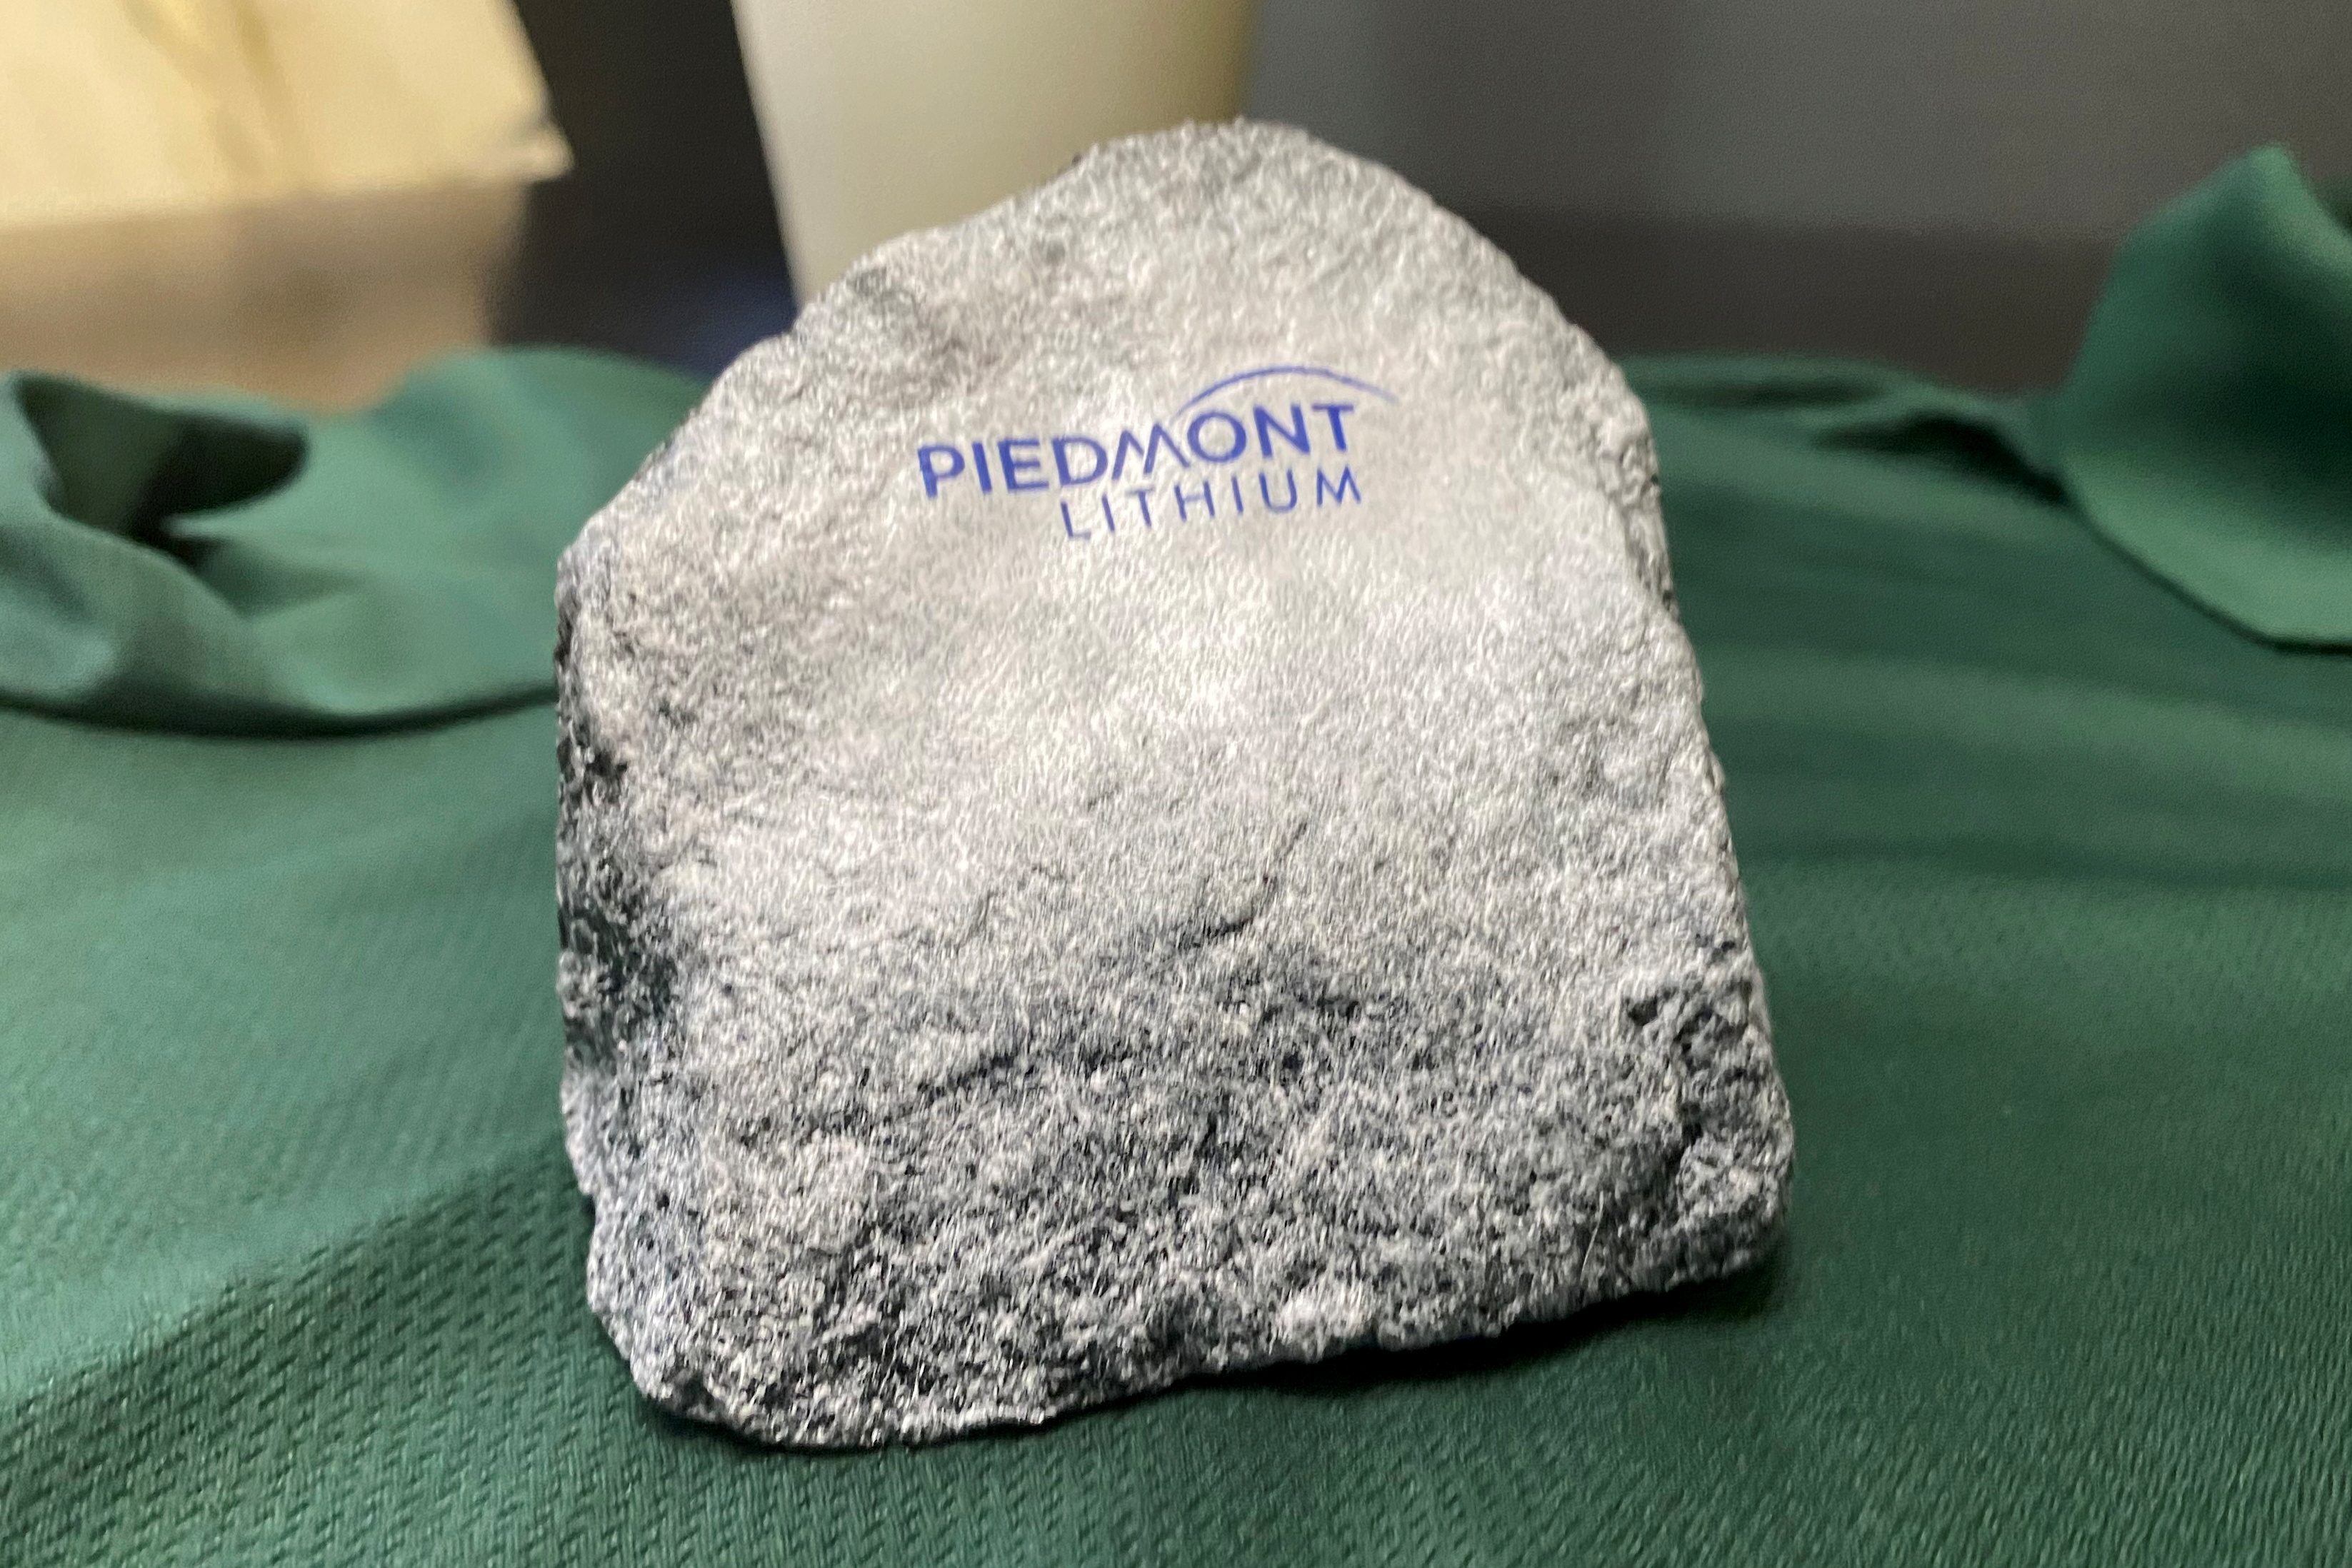 A rock stamped with a logo is displayed at Piedmont Lithium's headquarters in Belmont, Gaston County, North Carolina, U.S., July 16, 2021. REUTERS/Ernest Scheyder/Files